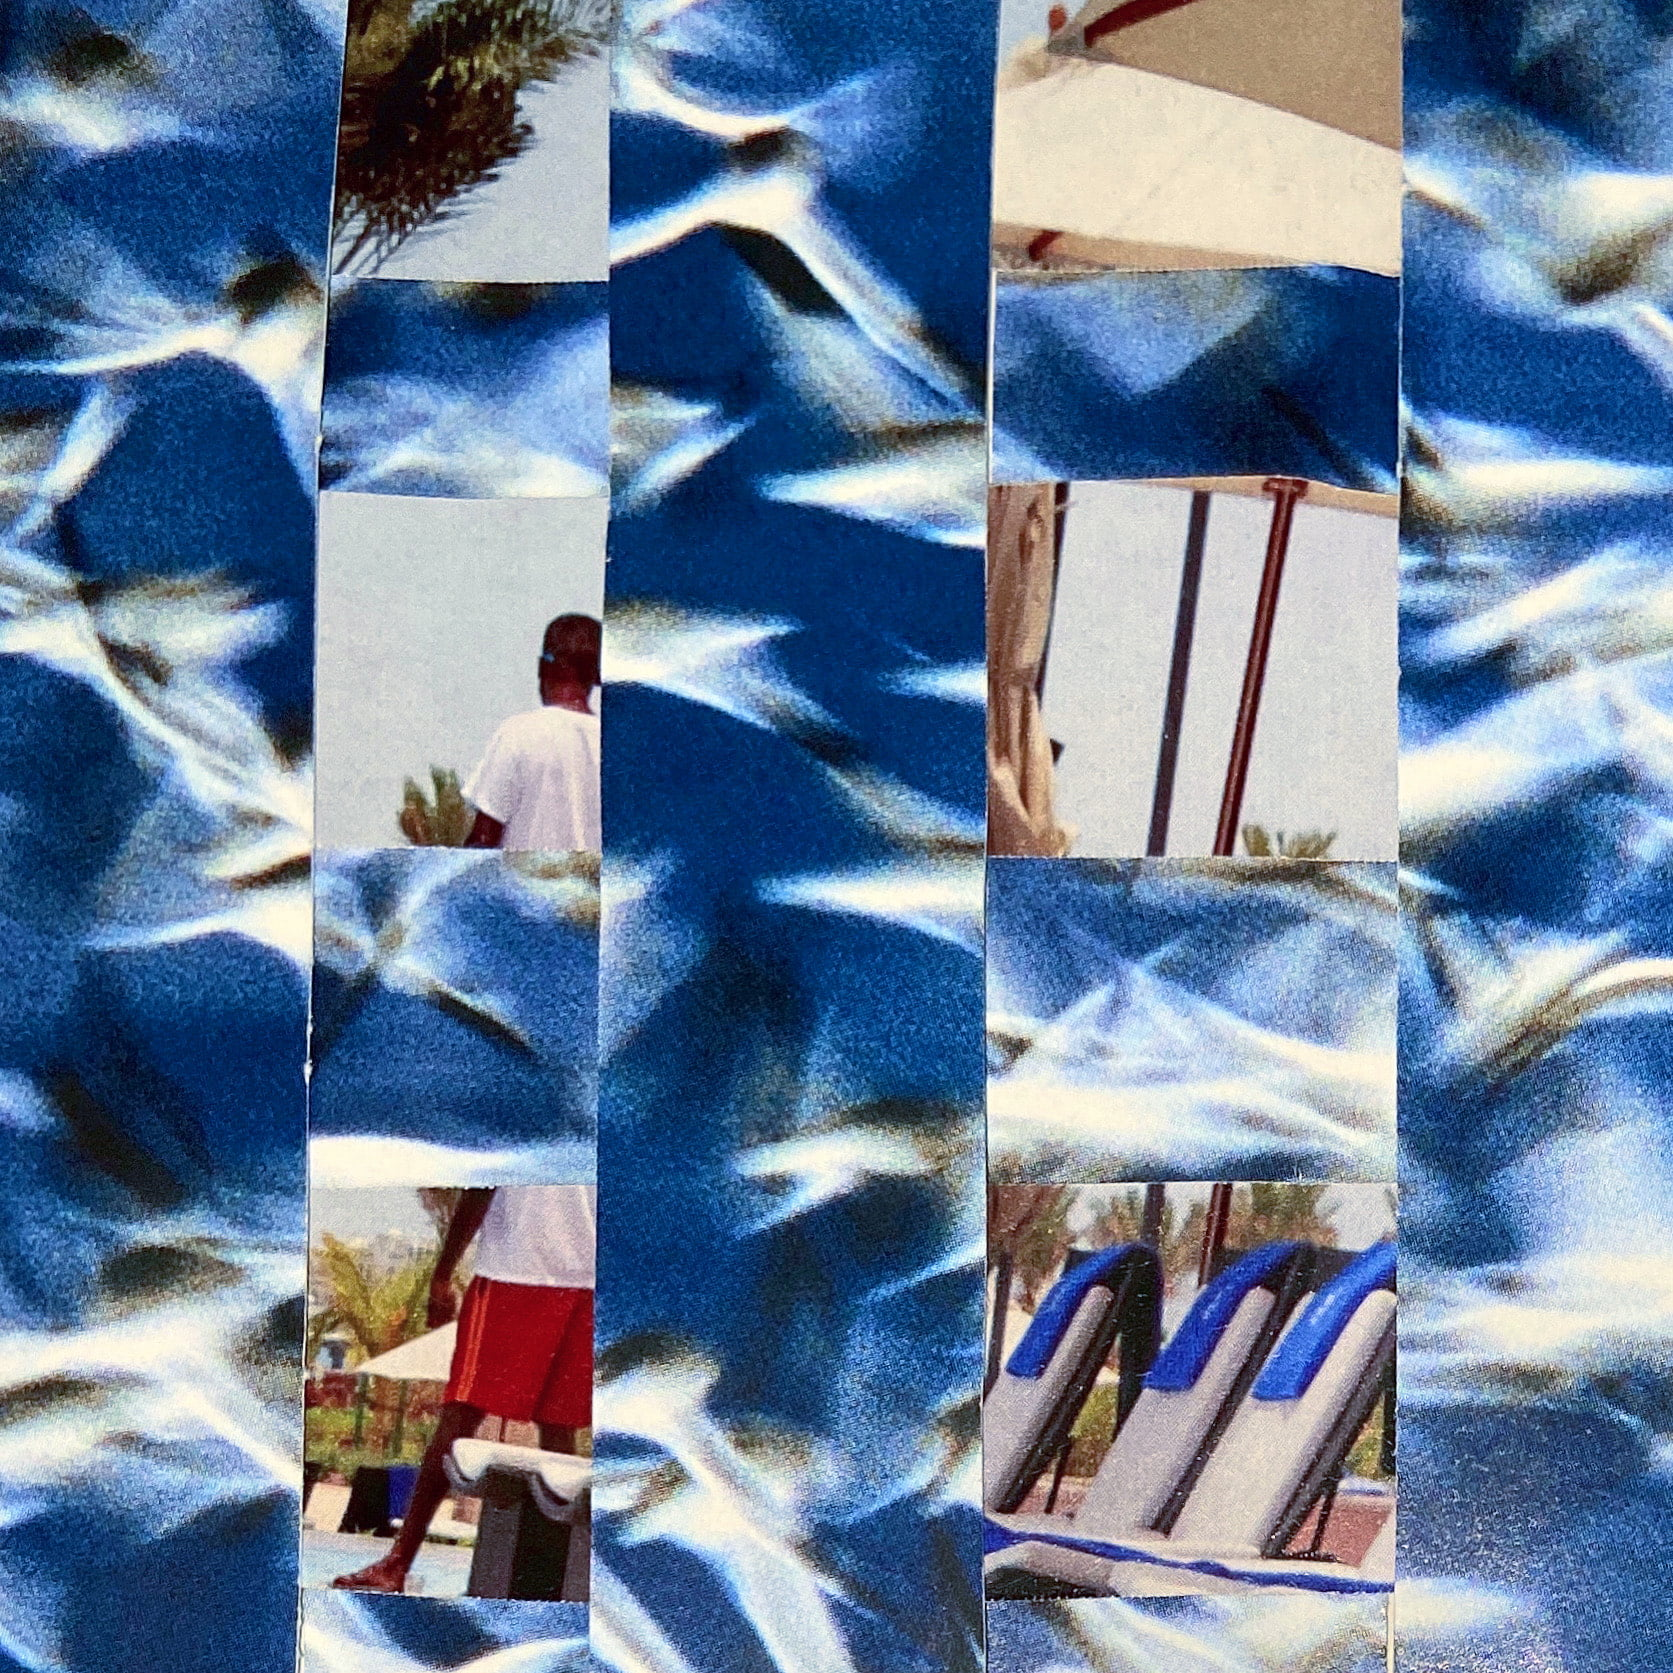 A mosaic-like collage of two images woven together in large squares. One image is a blue and white blur of wings or propellers turning in a blue sky and the other shows disrupted sections of a holiday photo of a man in swim shorts by sun loungers in a warm tropical setting.